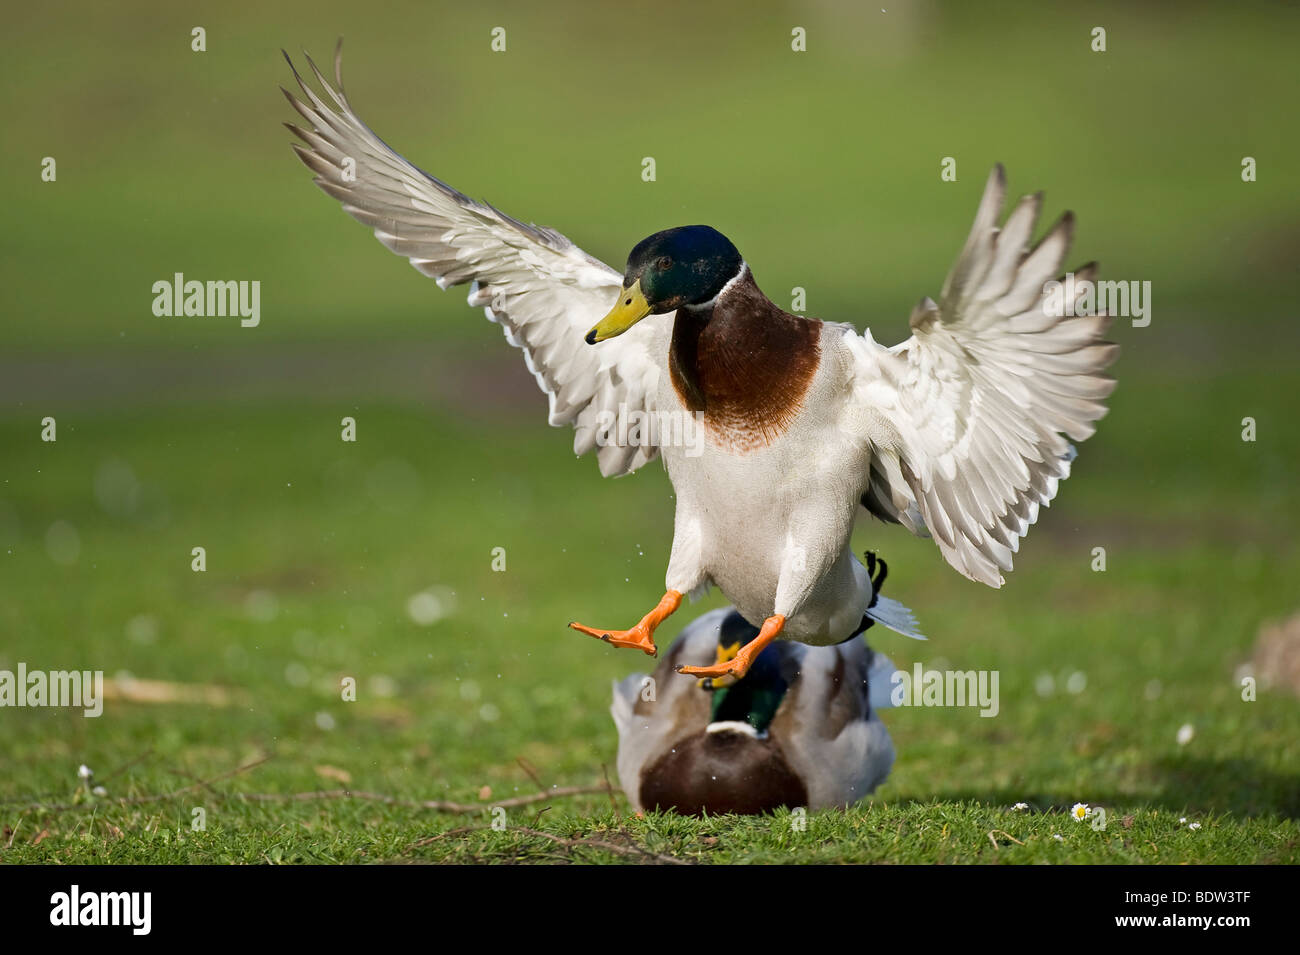 A duck in landing approach - Stock Image